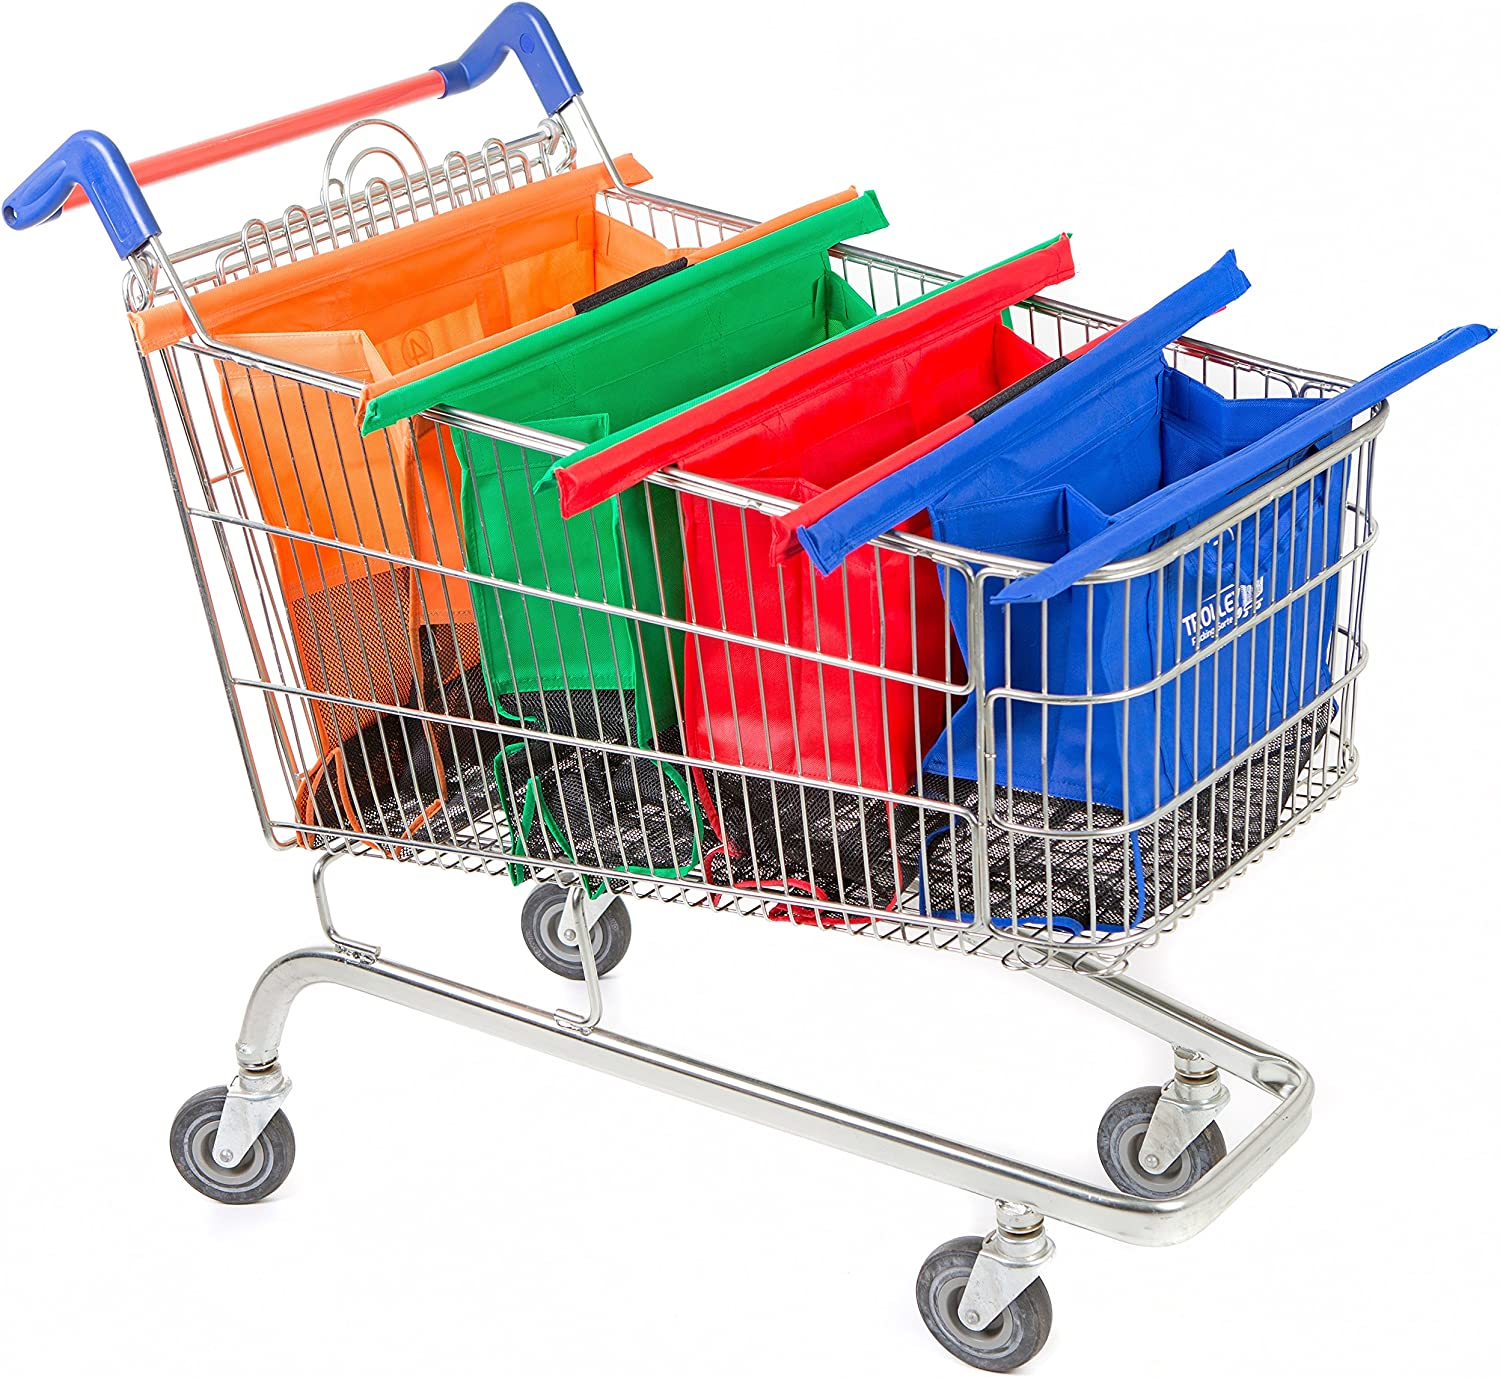 Trolley Bags Original Vibe Reusable Shopping Bags - Set of 4 Bags for  Normal Supermarket Trolleys: Amazon.co.uk: Kitchen & Home